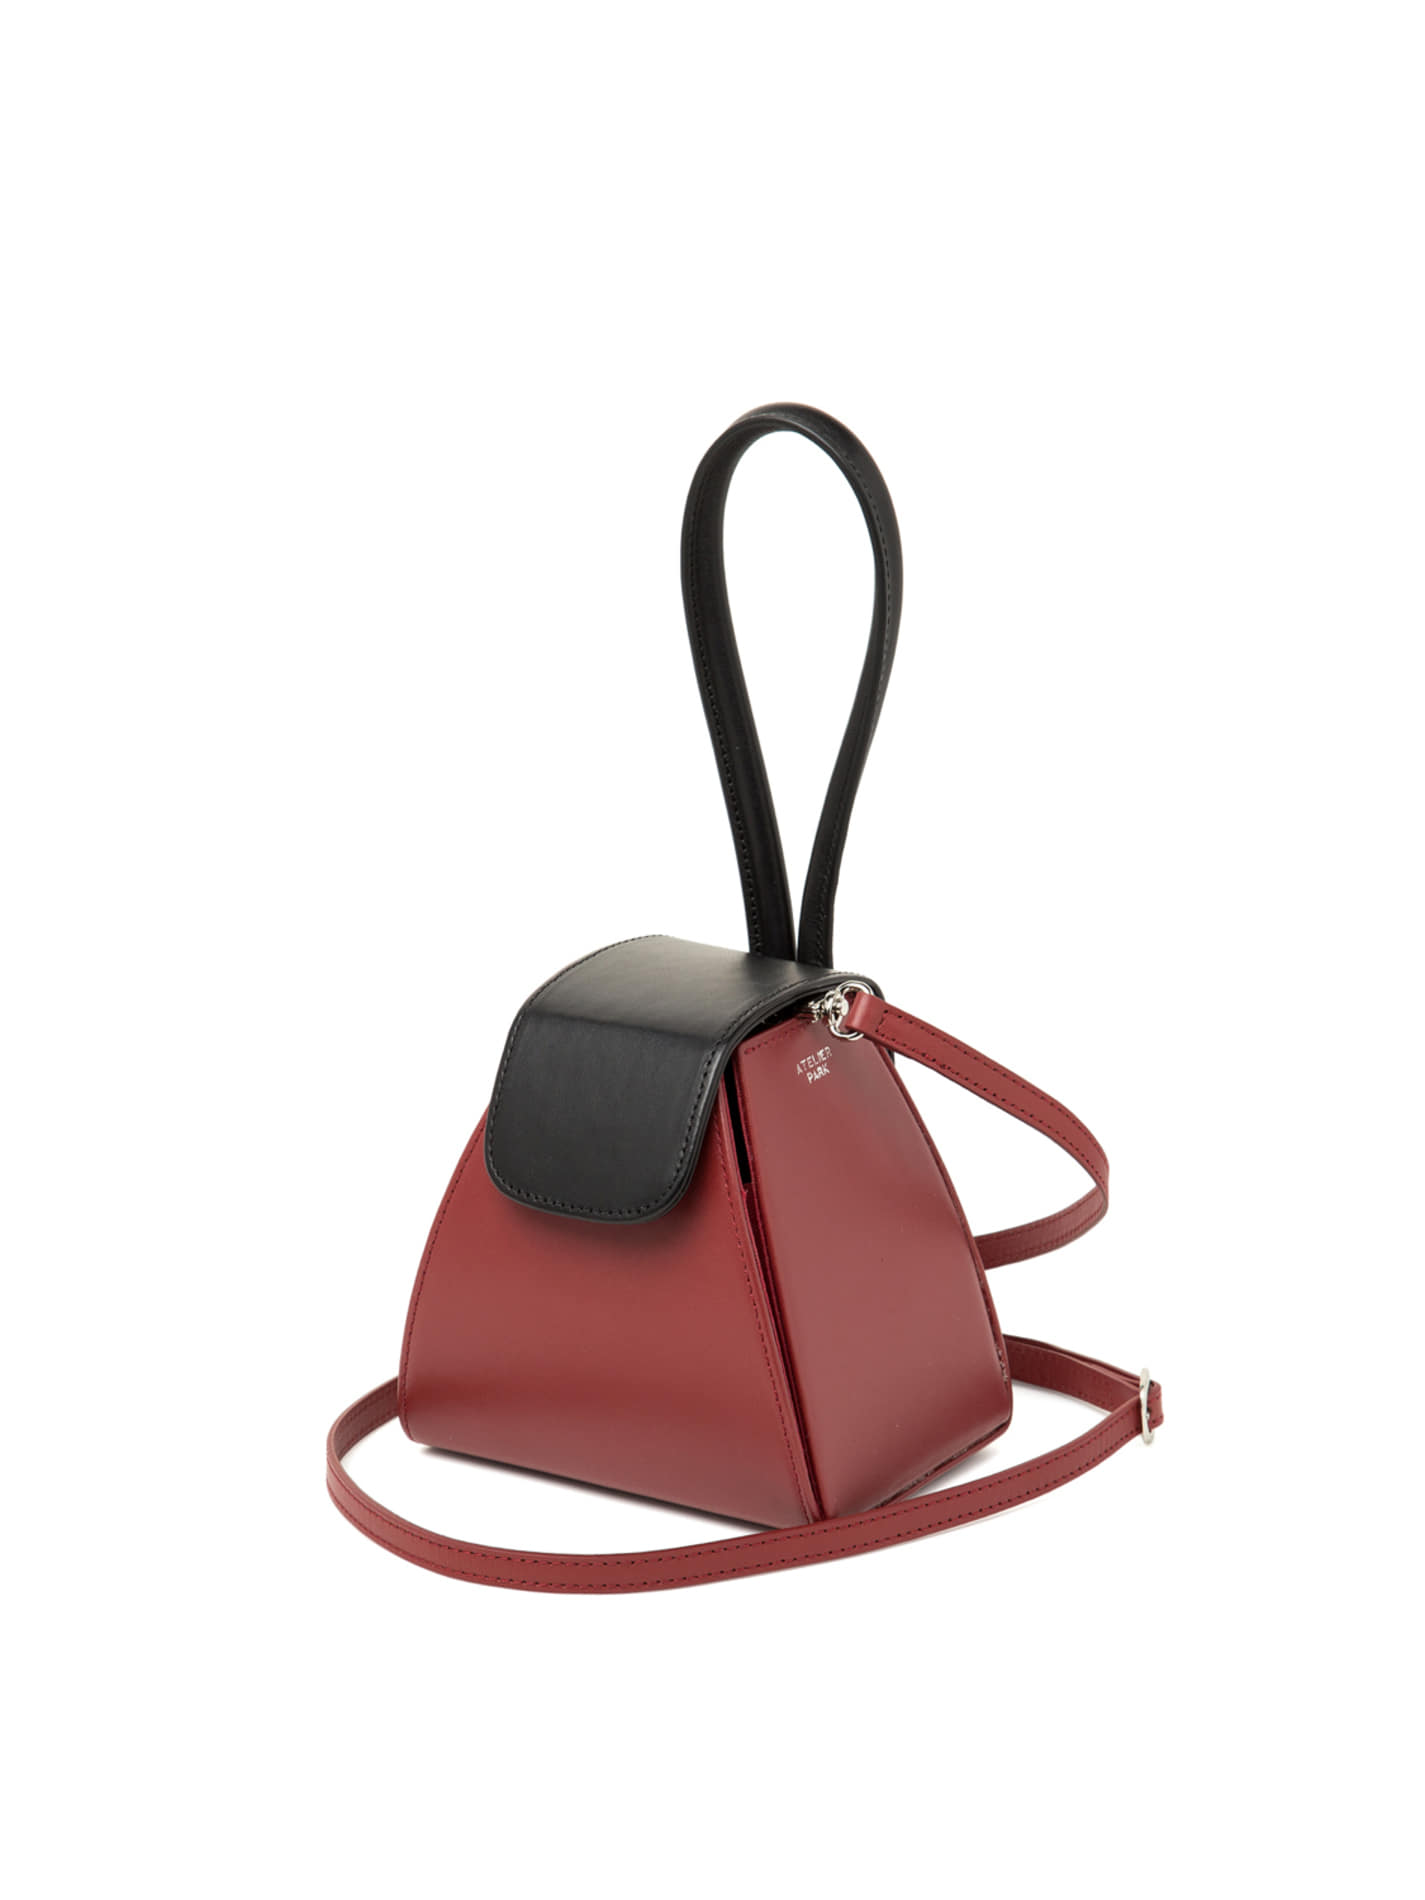 COLOR BLOCK HANDLE BAG -RED / BLACK (레더스트랩포함)